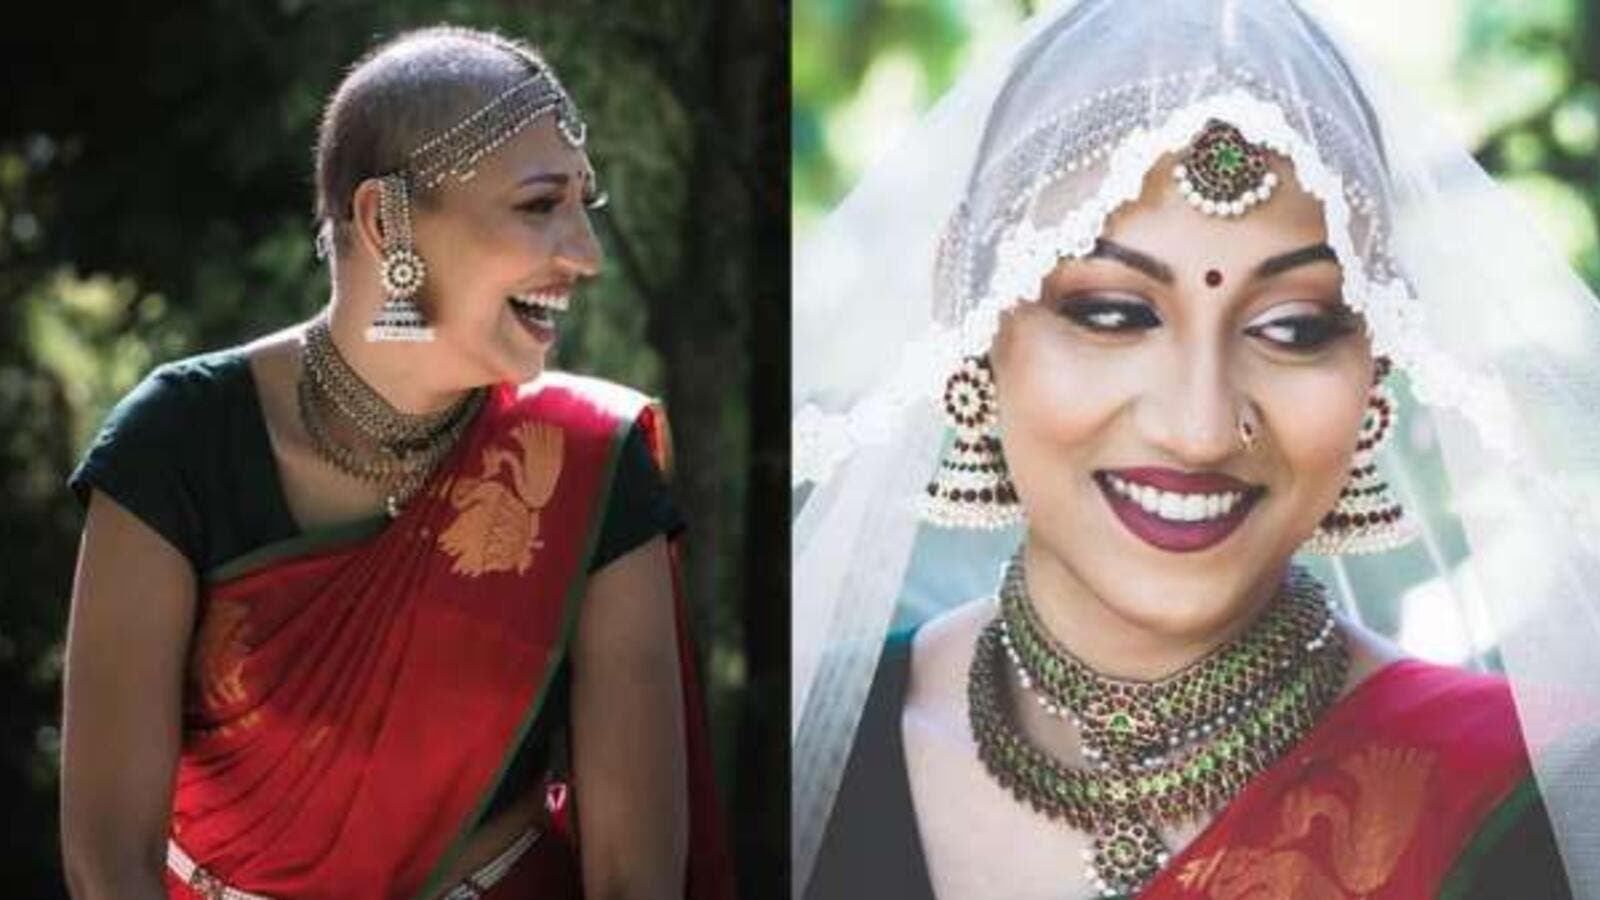 Vashnavi Poovanedran is a cancer survivor's bride. (Vashnavi Poovanedran/ Instagram)